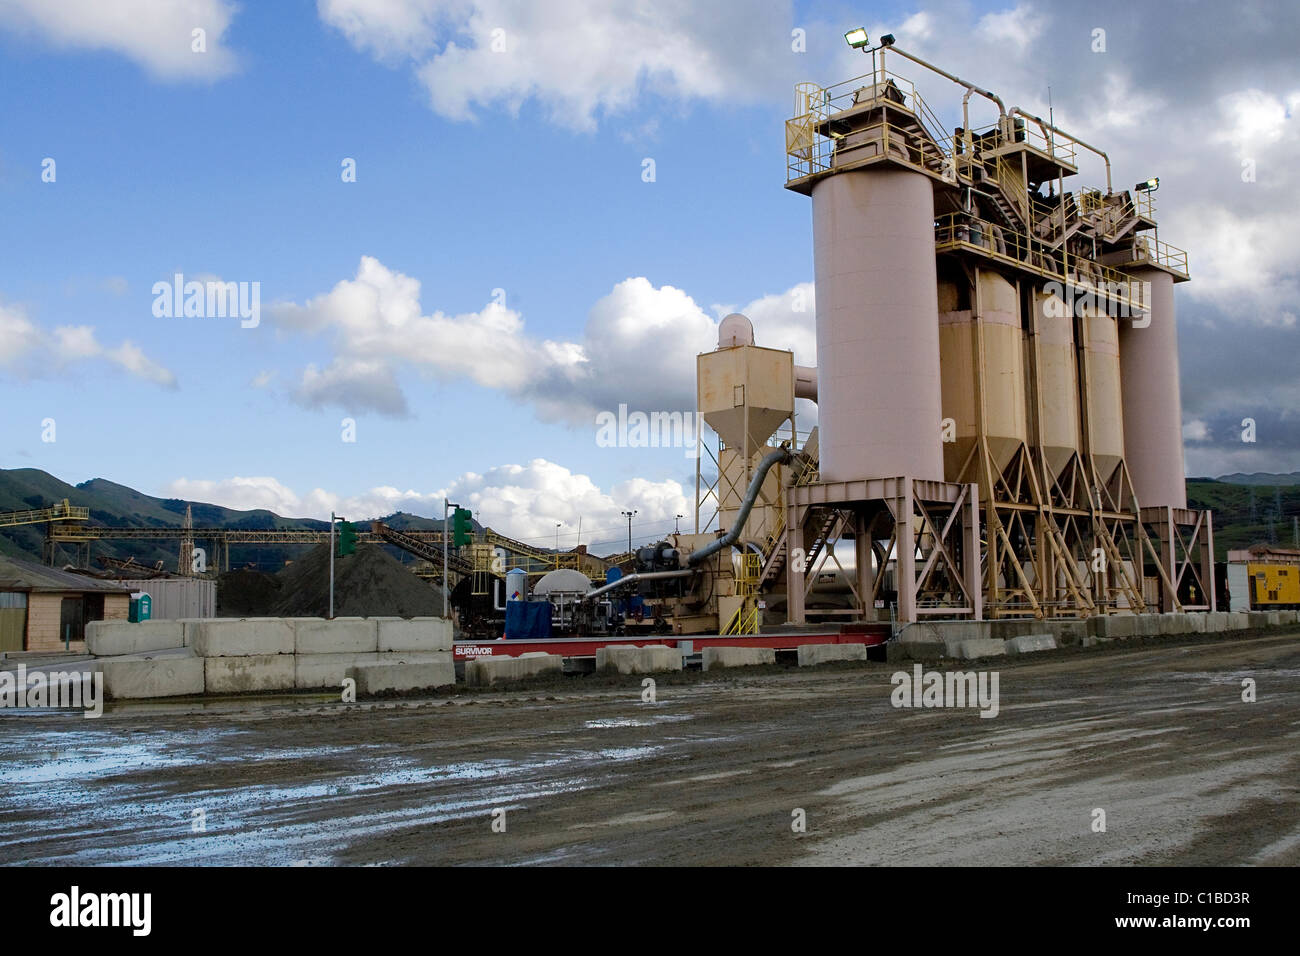 A gravel mining factory. - Stock Image